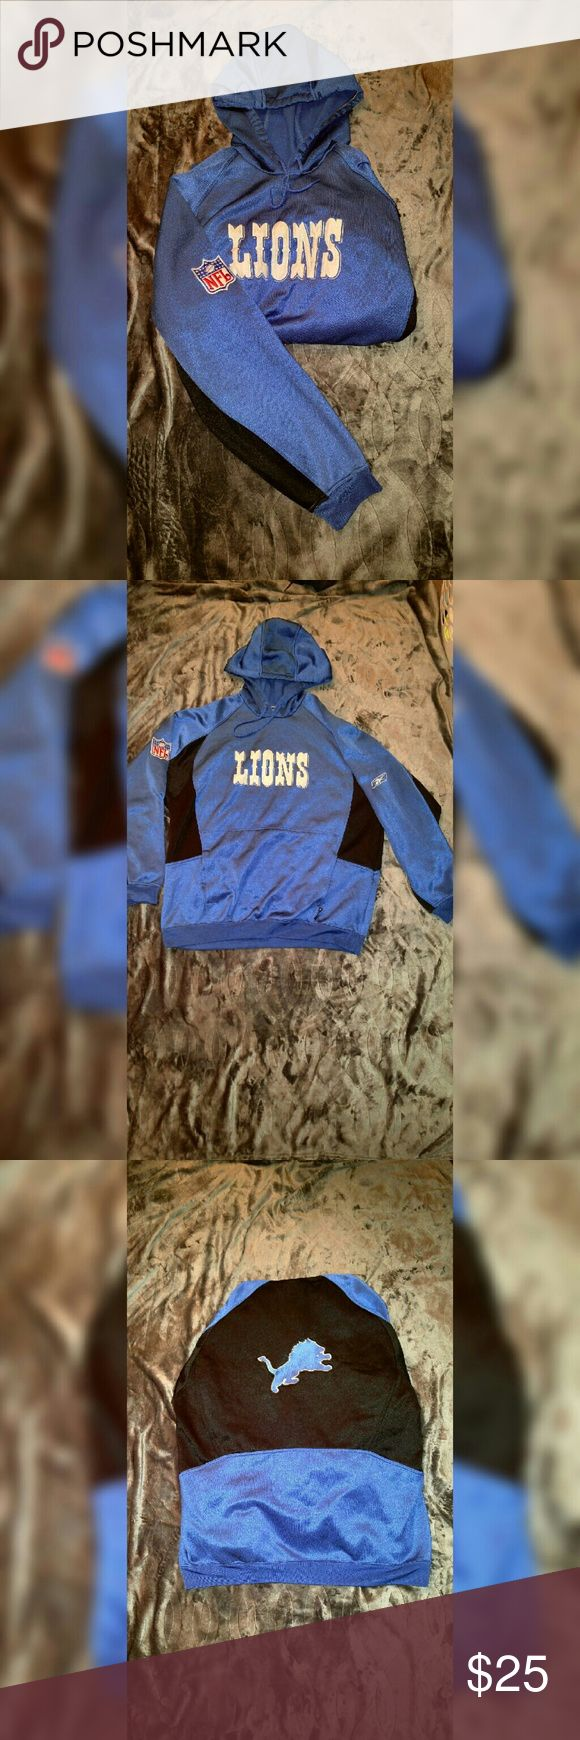 Lions NFL Sweatshirt In great condition only worn once. No signs of wear or tear and no stains or marks look brand new. Reebok Shirts Sweatshirts & Hoodies